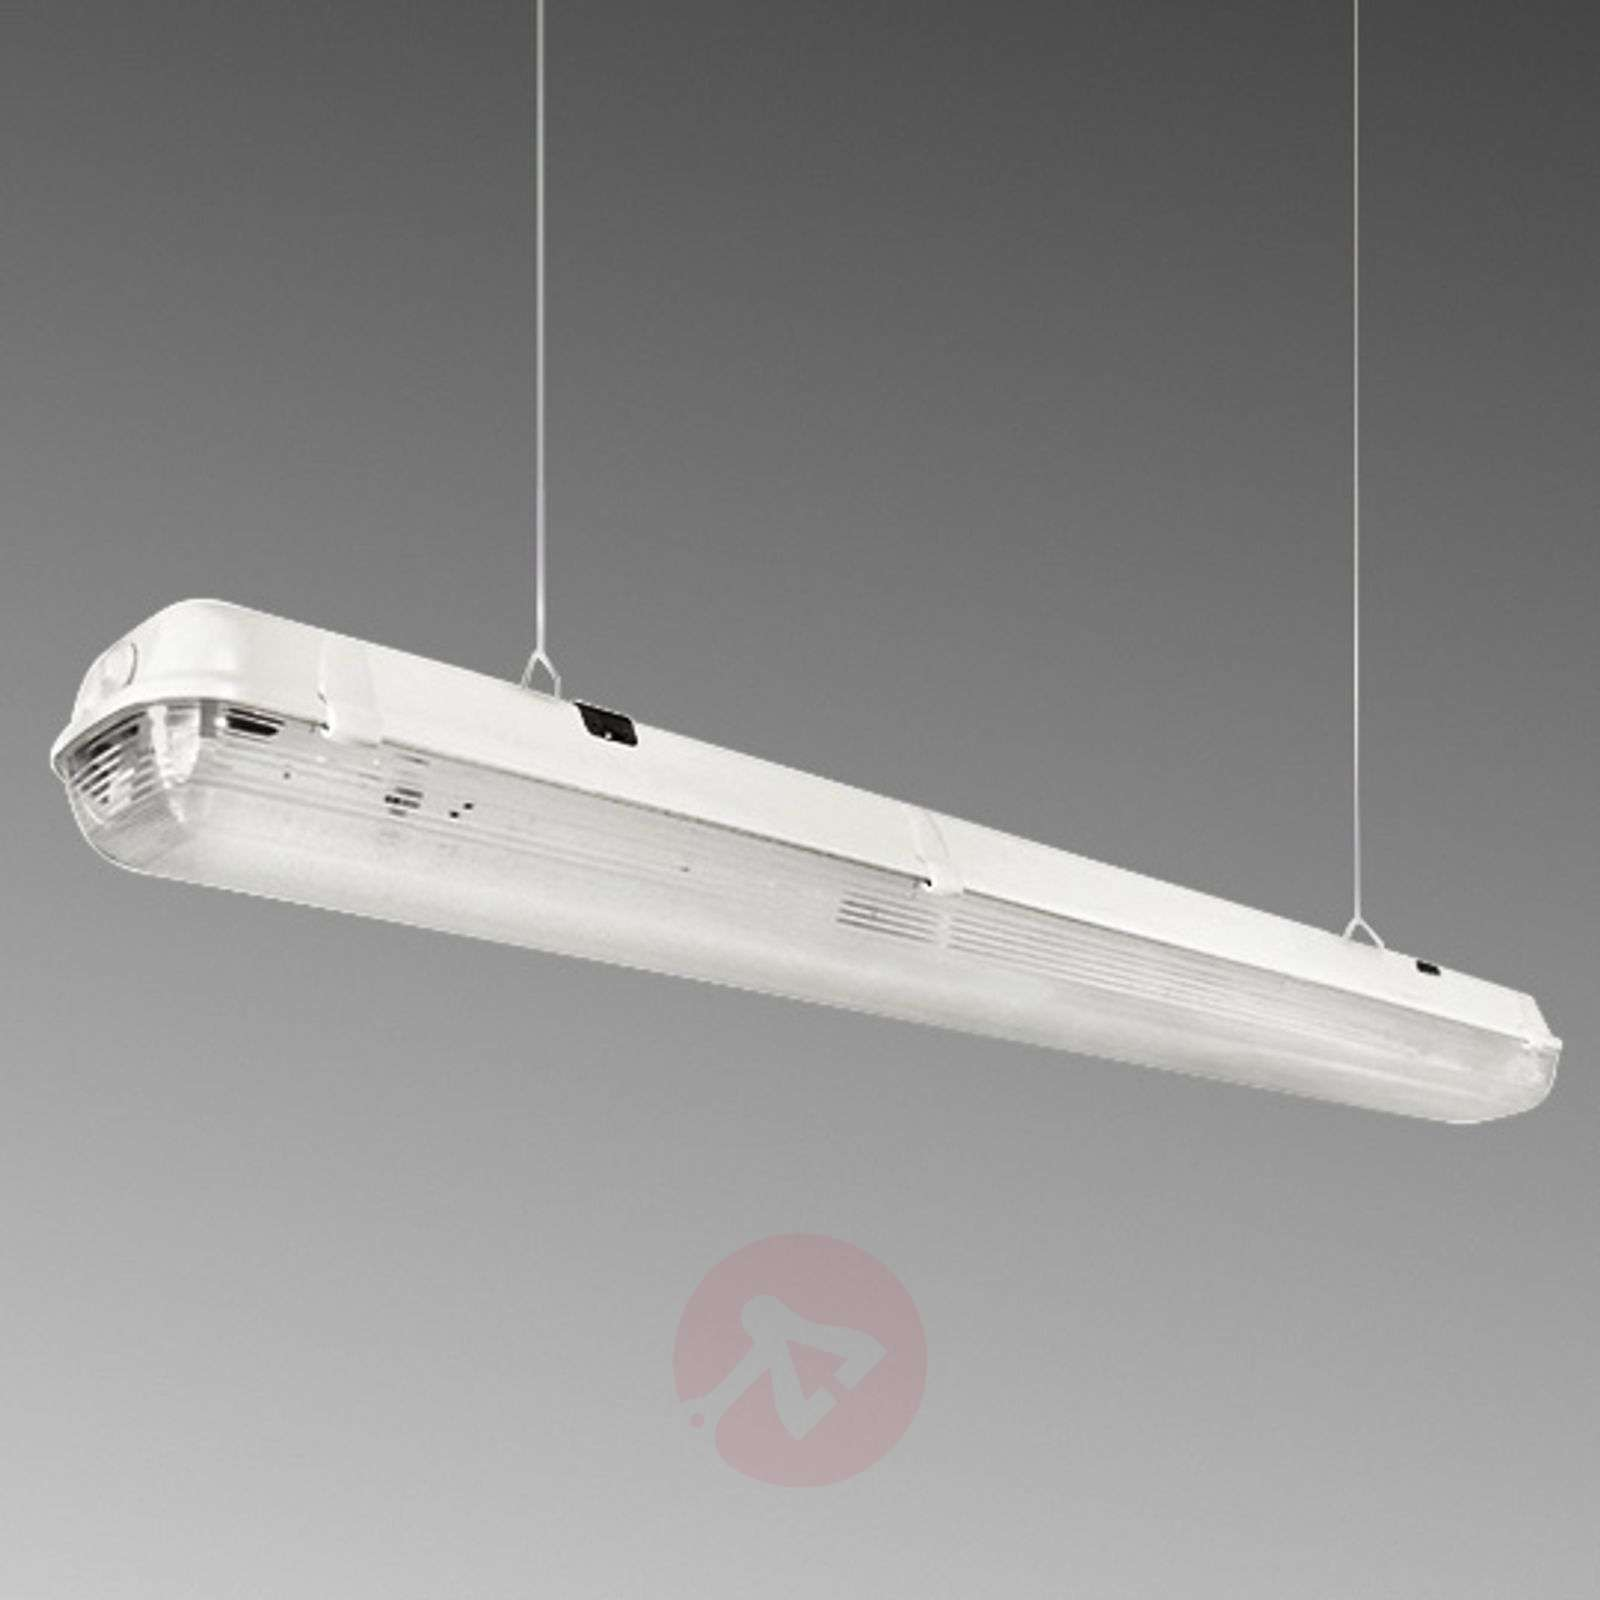 Plafoniera Stagna Led 150 Cm : Acquista plafoniera stagna led per l industria w lampade